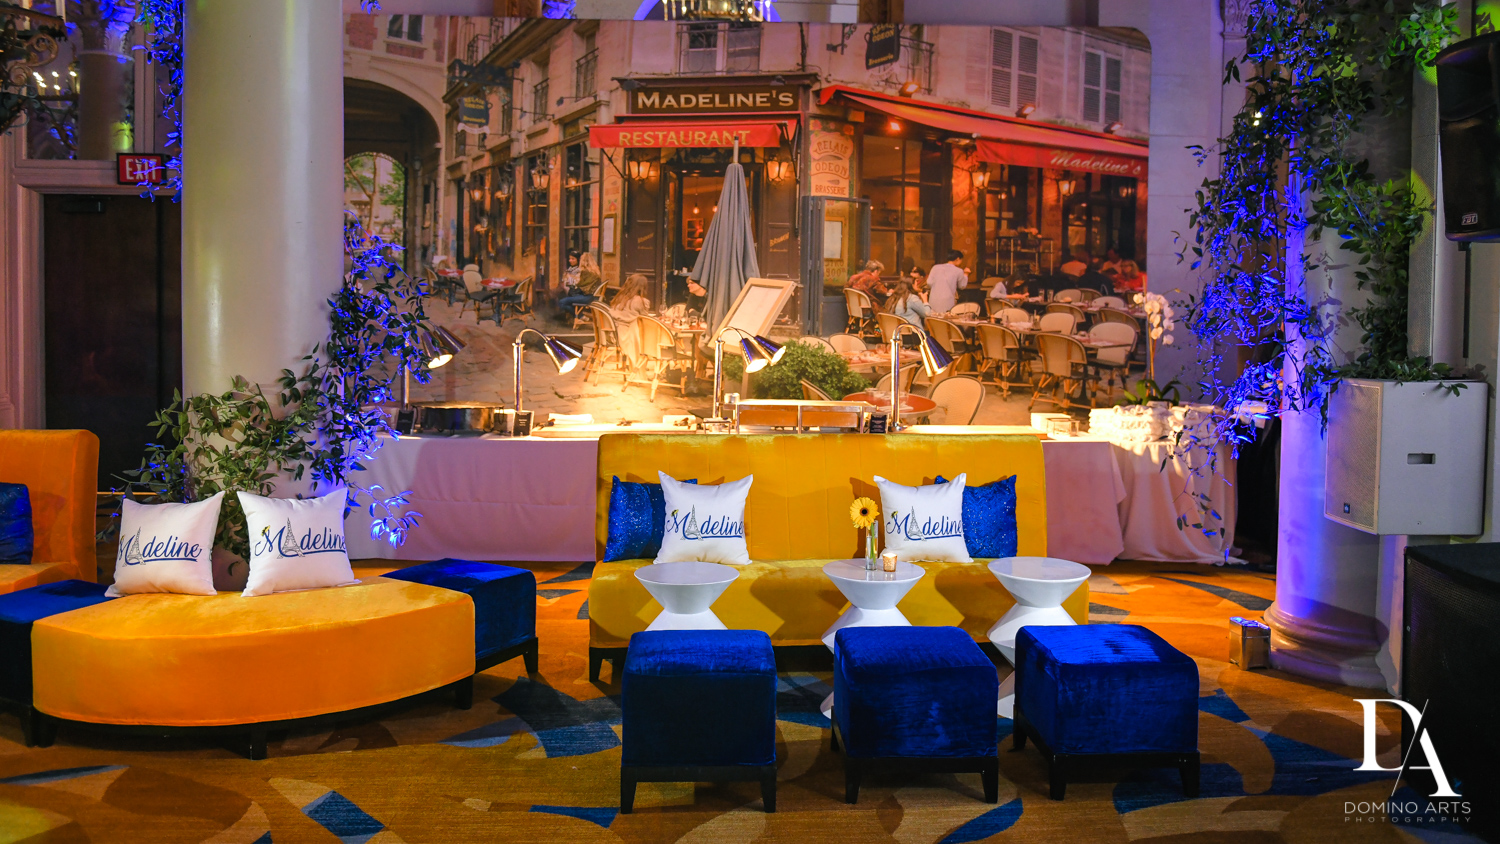 colorful furniture and rentals at Madeline in Paris theme Bat Mitzvah at Boca Raton Resort and Club by Domino Arts Photography